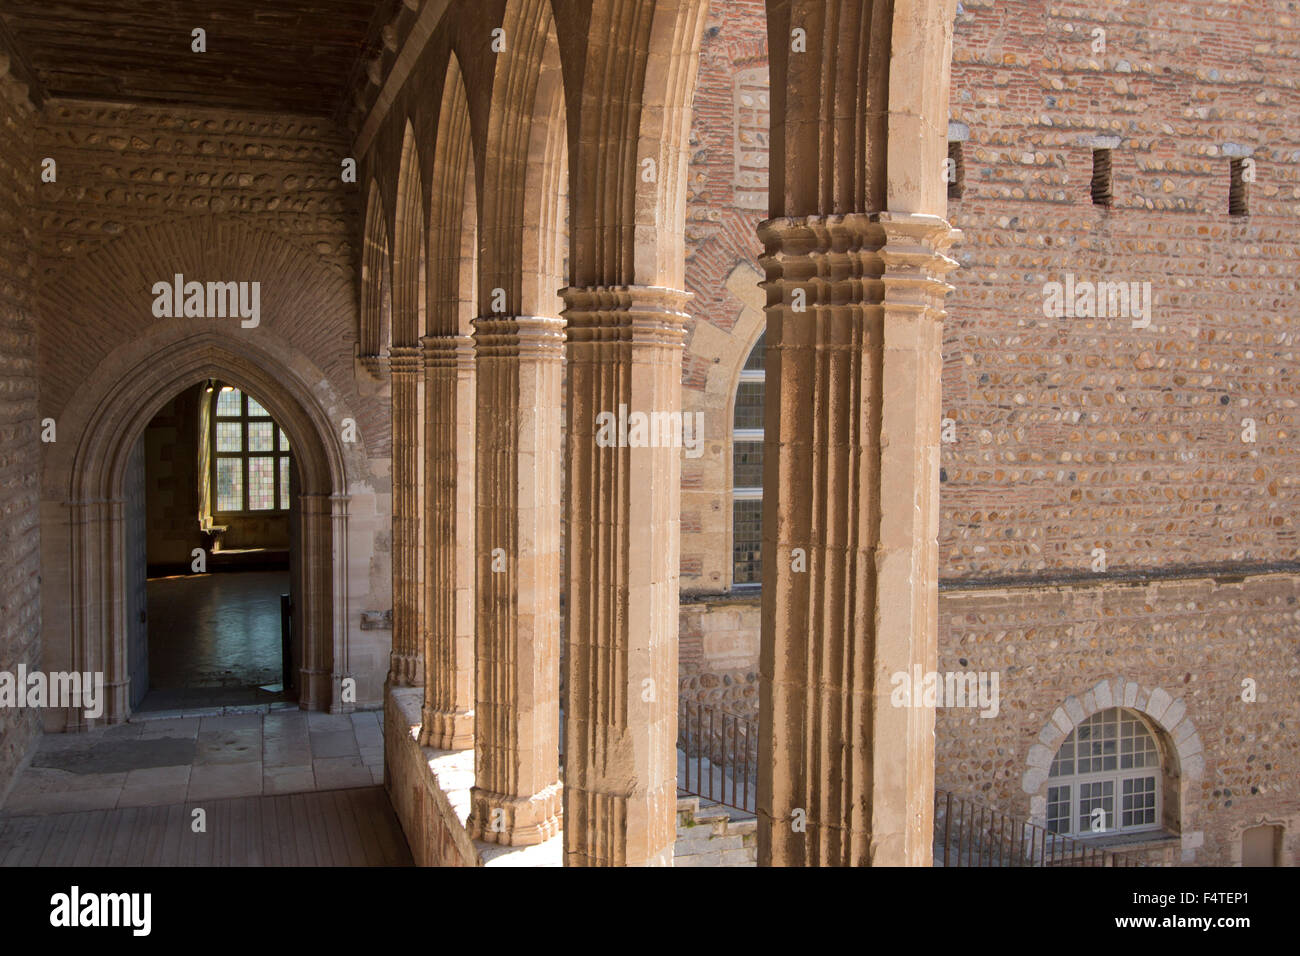 France, Europe, Perpignan, town, city, department Pyrenees-Orientals, Languedoc-Roussillon, castle, fortress, wall, - Stock Image